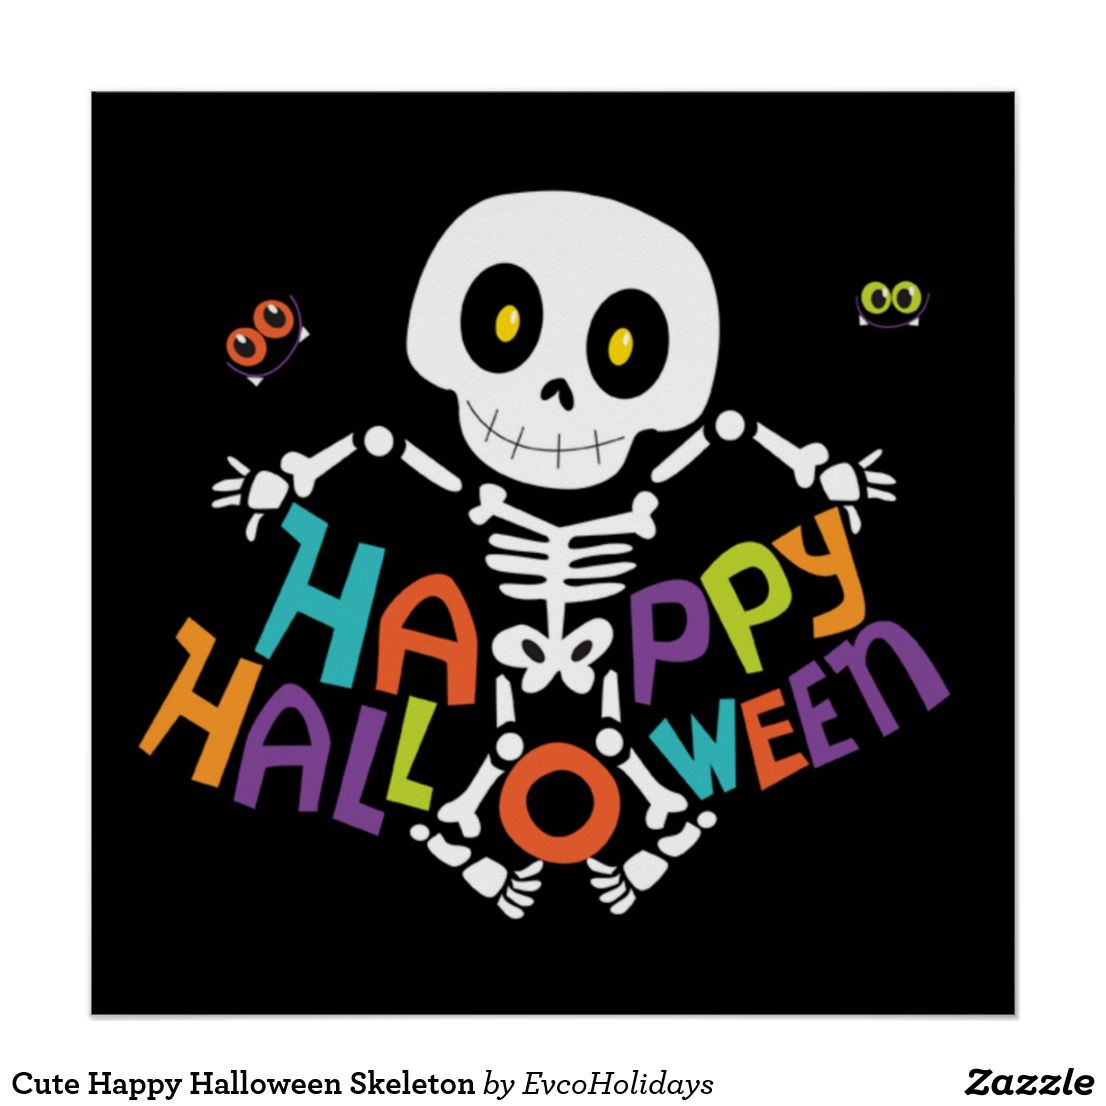 Cute Happy Halloween Skeleton Halloween Party Partyideas Posters Cute Style Trendy Gifts Happy Halloween Funny Halloween Skeletons Happy Halloween